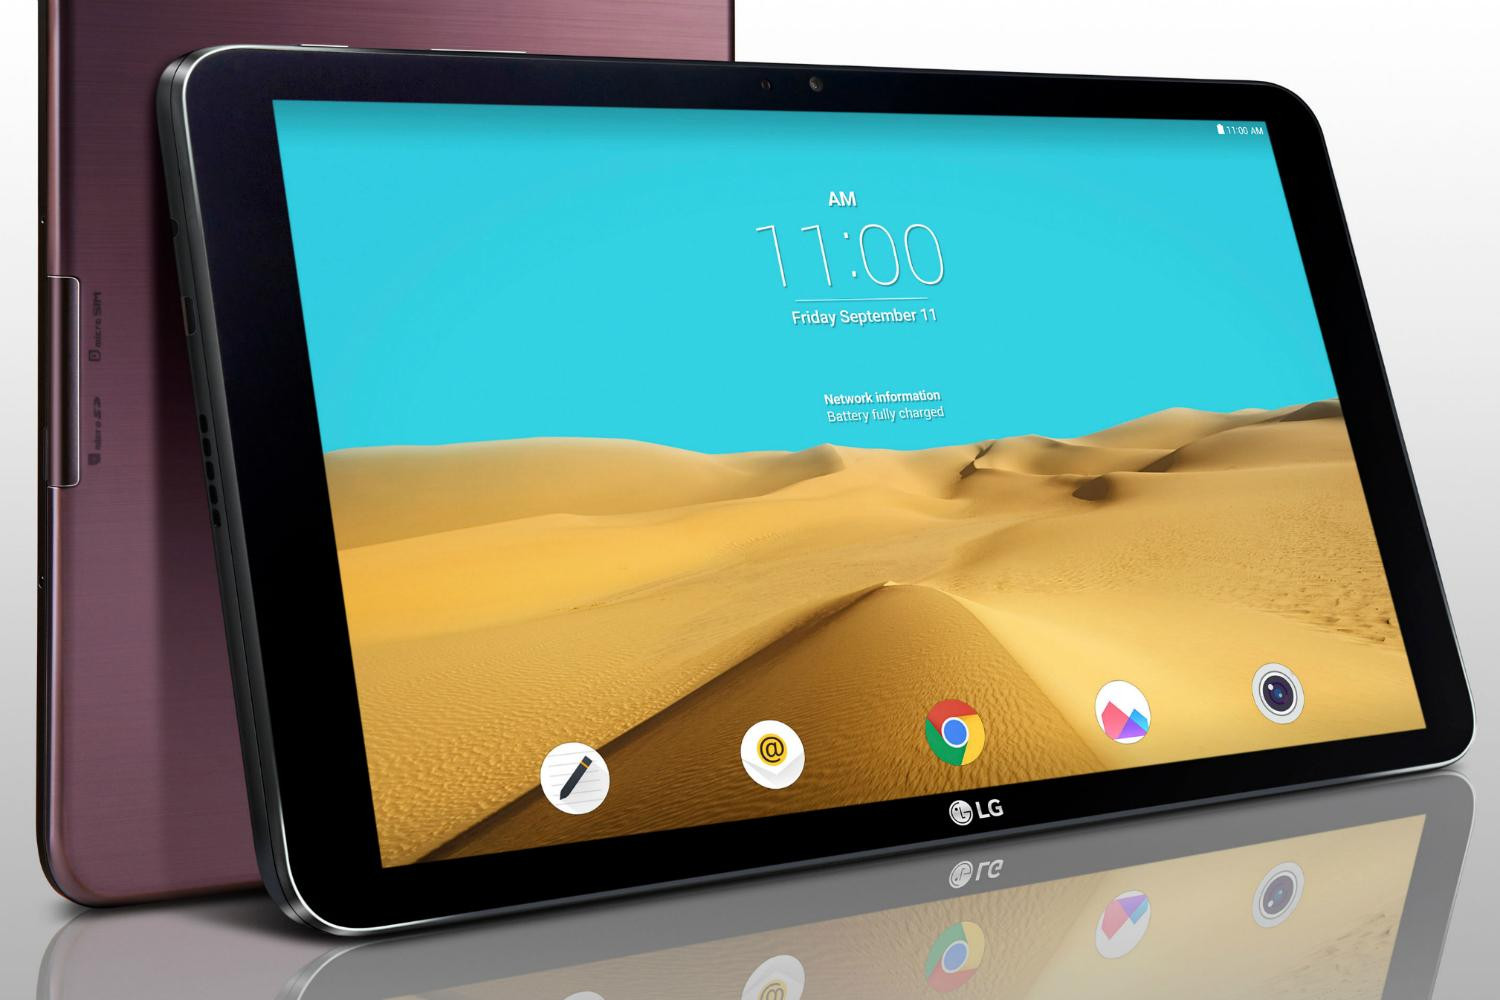 Save $110 on the battery-friendly LG G Pad 2 10.1-inch Android Tablet